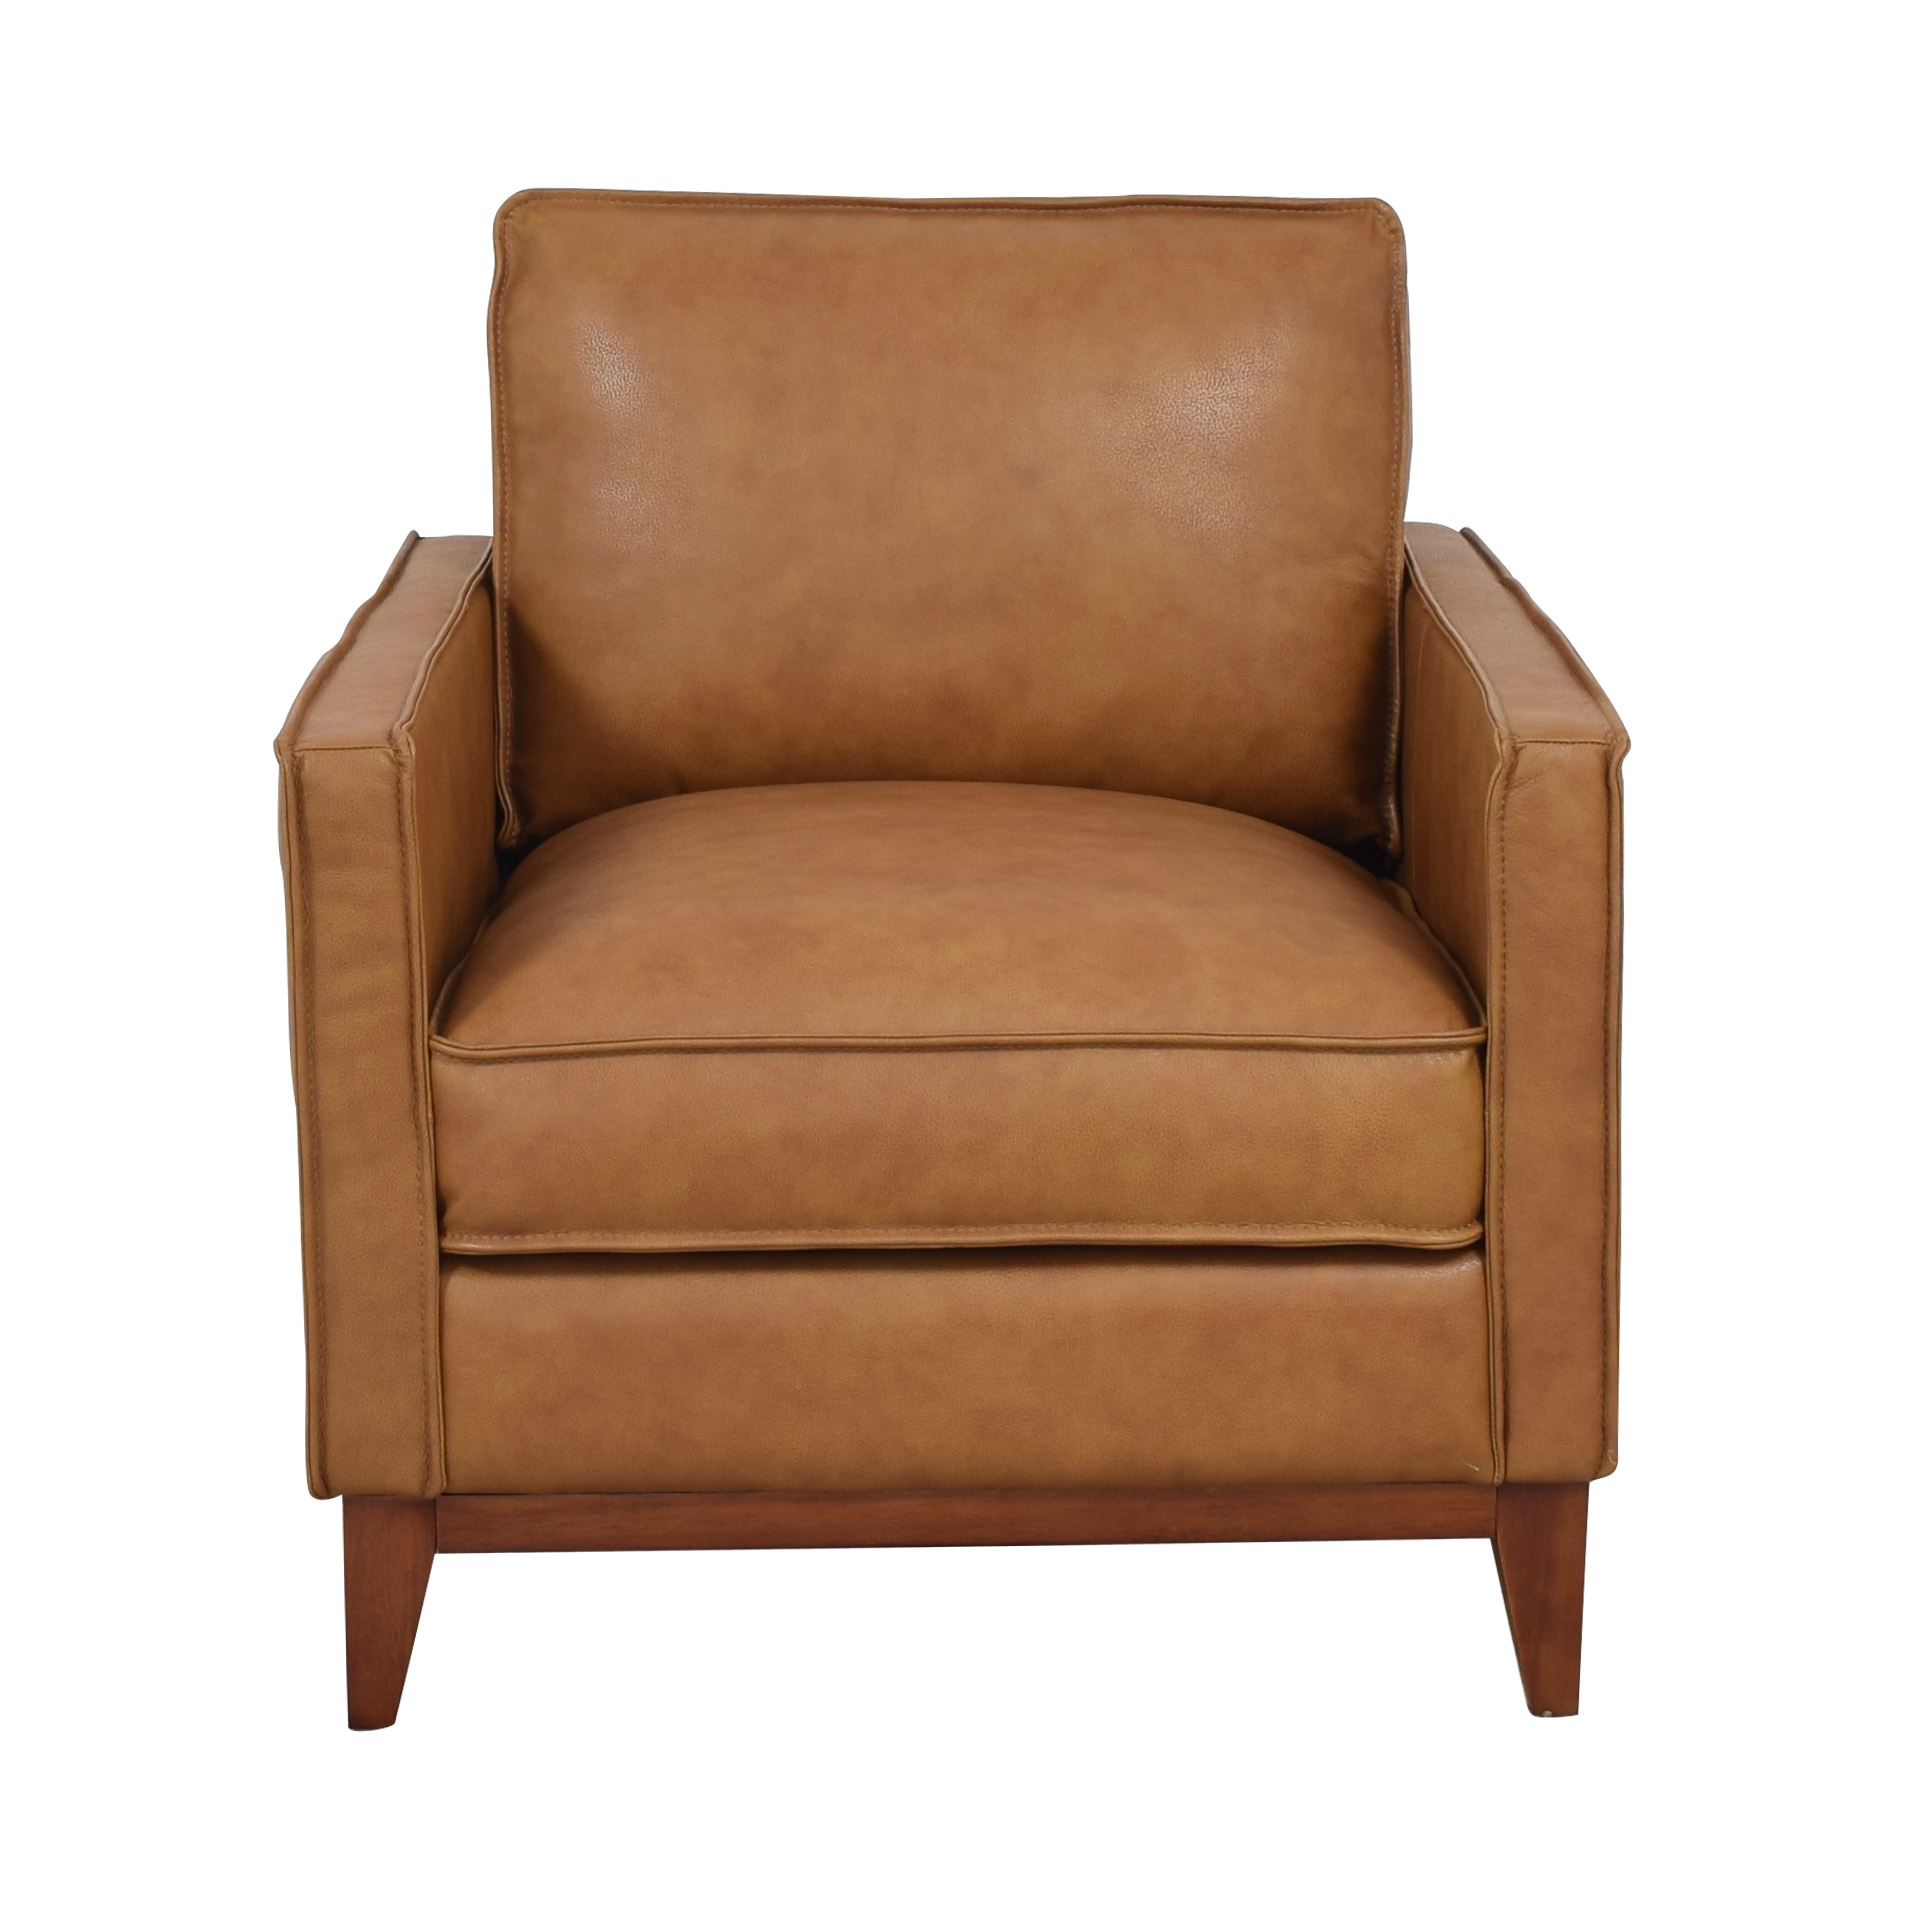 Leather Italia Newport Chair / Accent Chairs